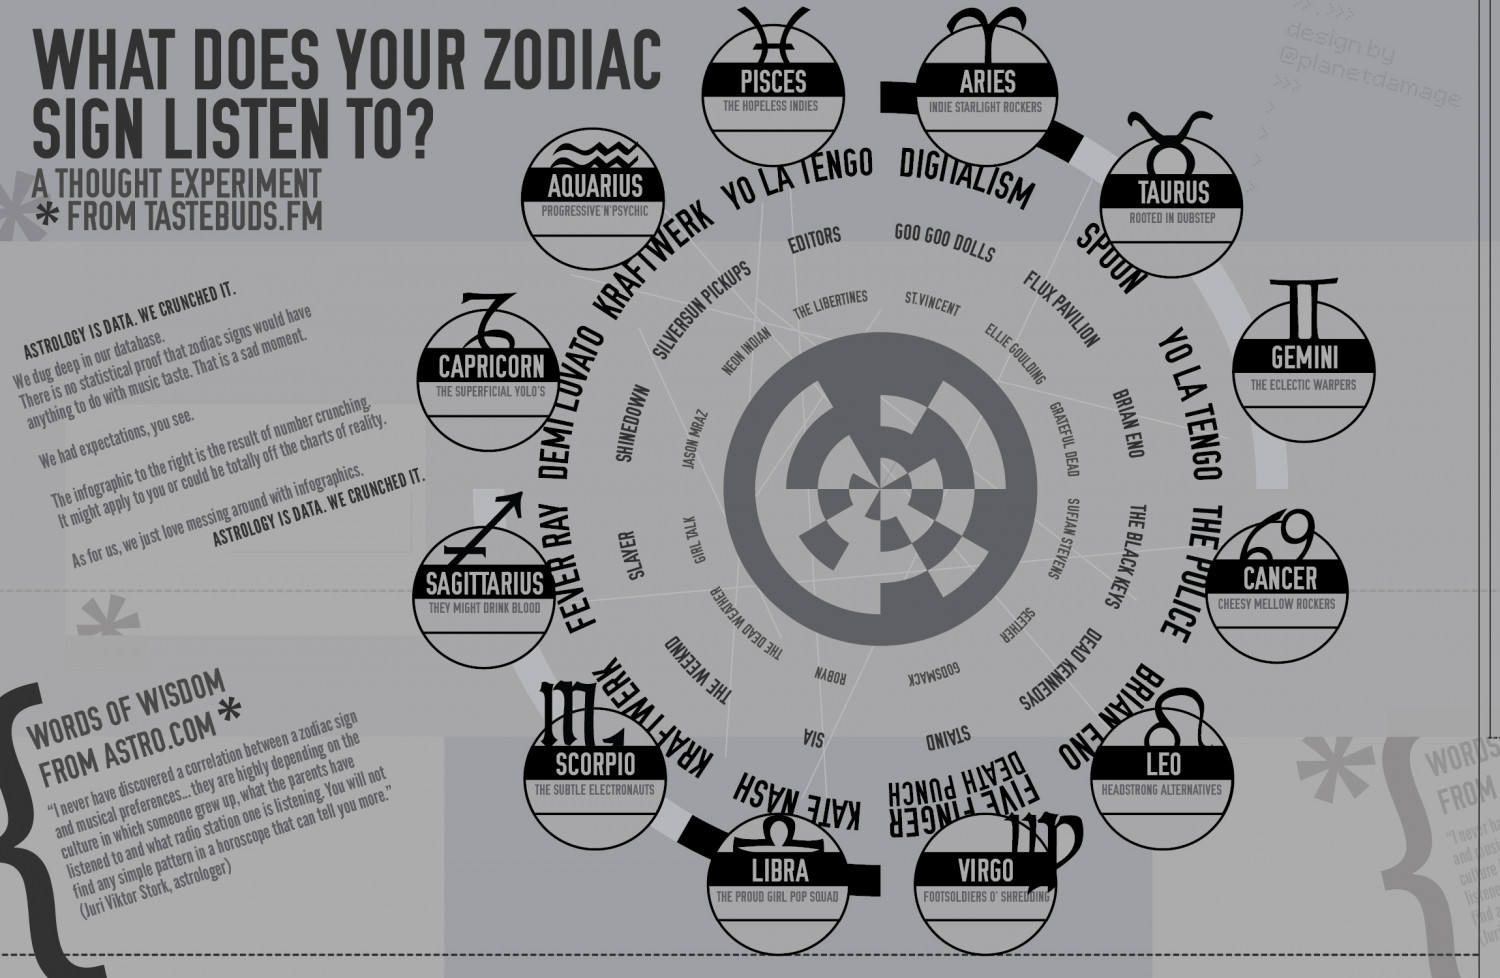 What Does Your Zodiac Sign Listen To? Infographic